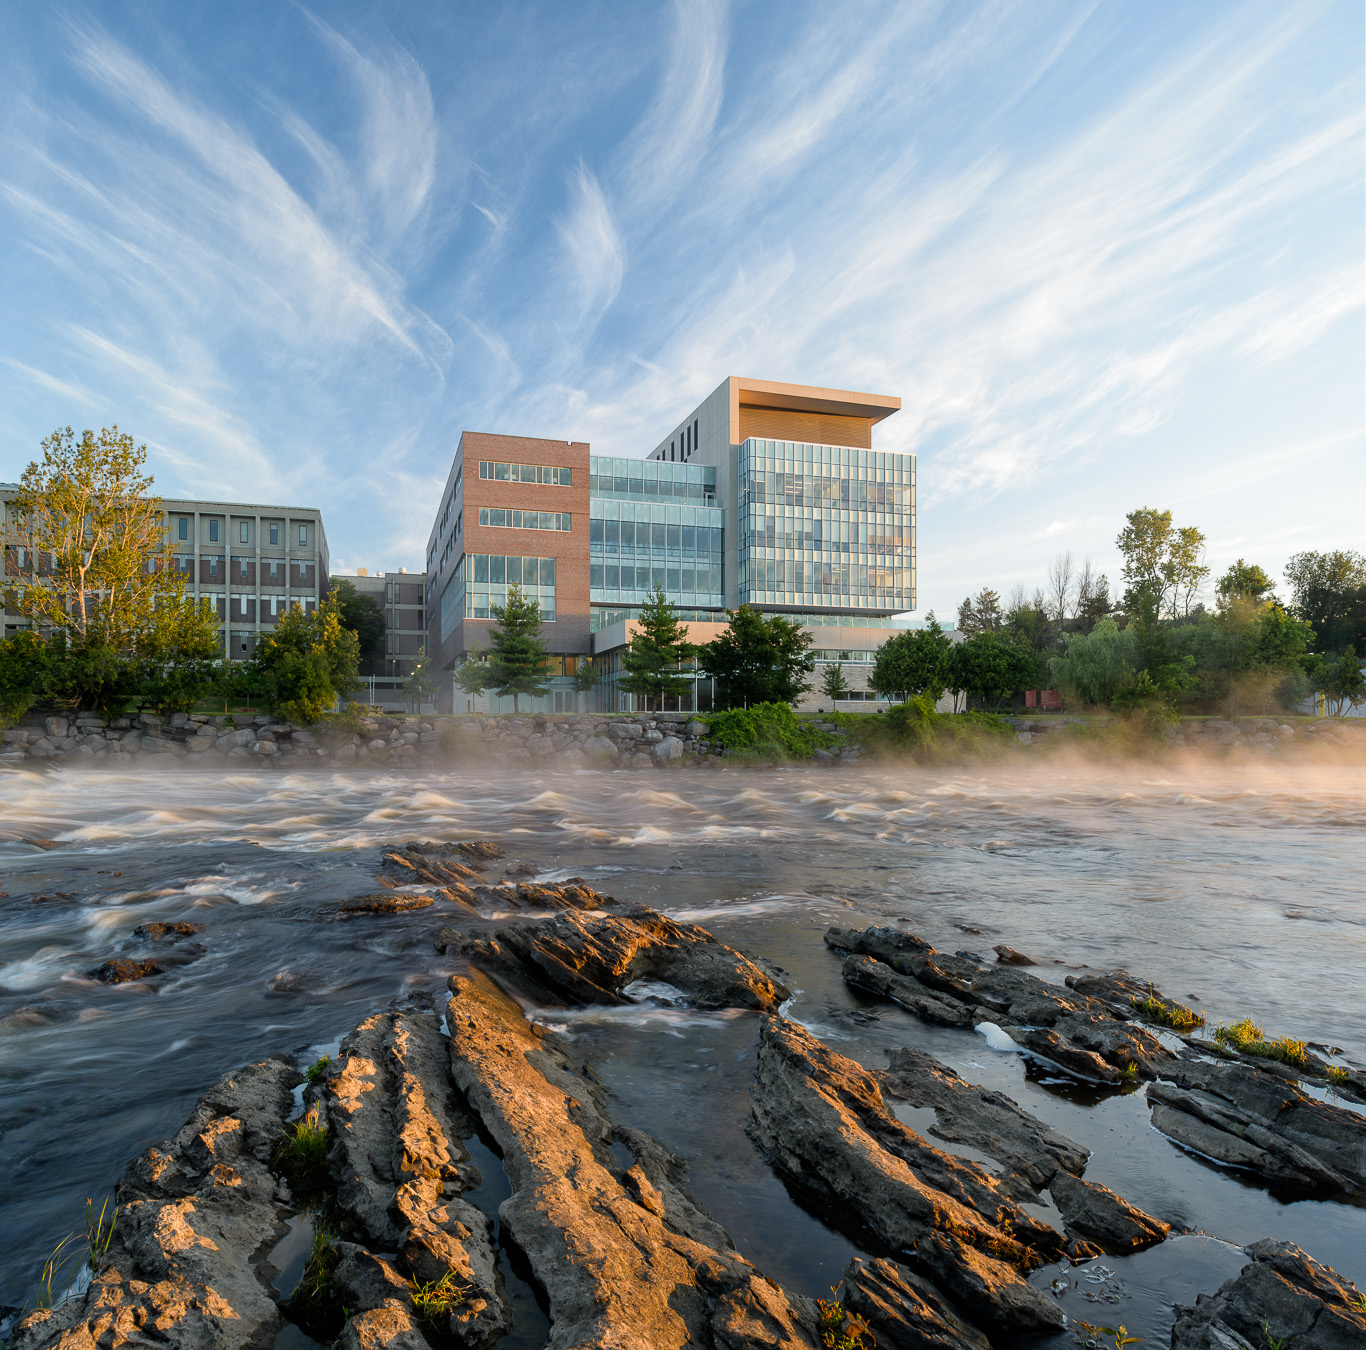 201308 MTARCH River Building-24-DUP.jpg